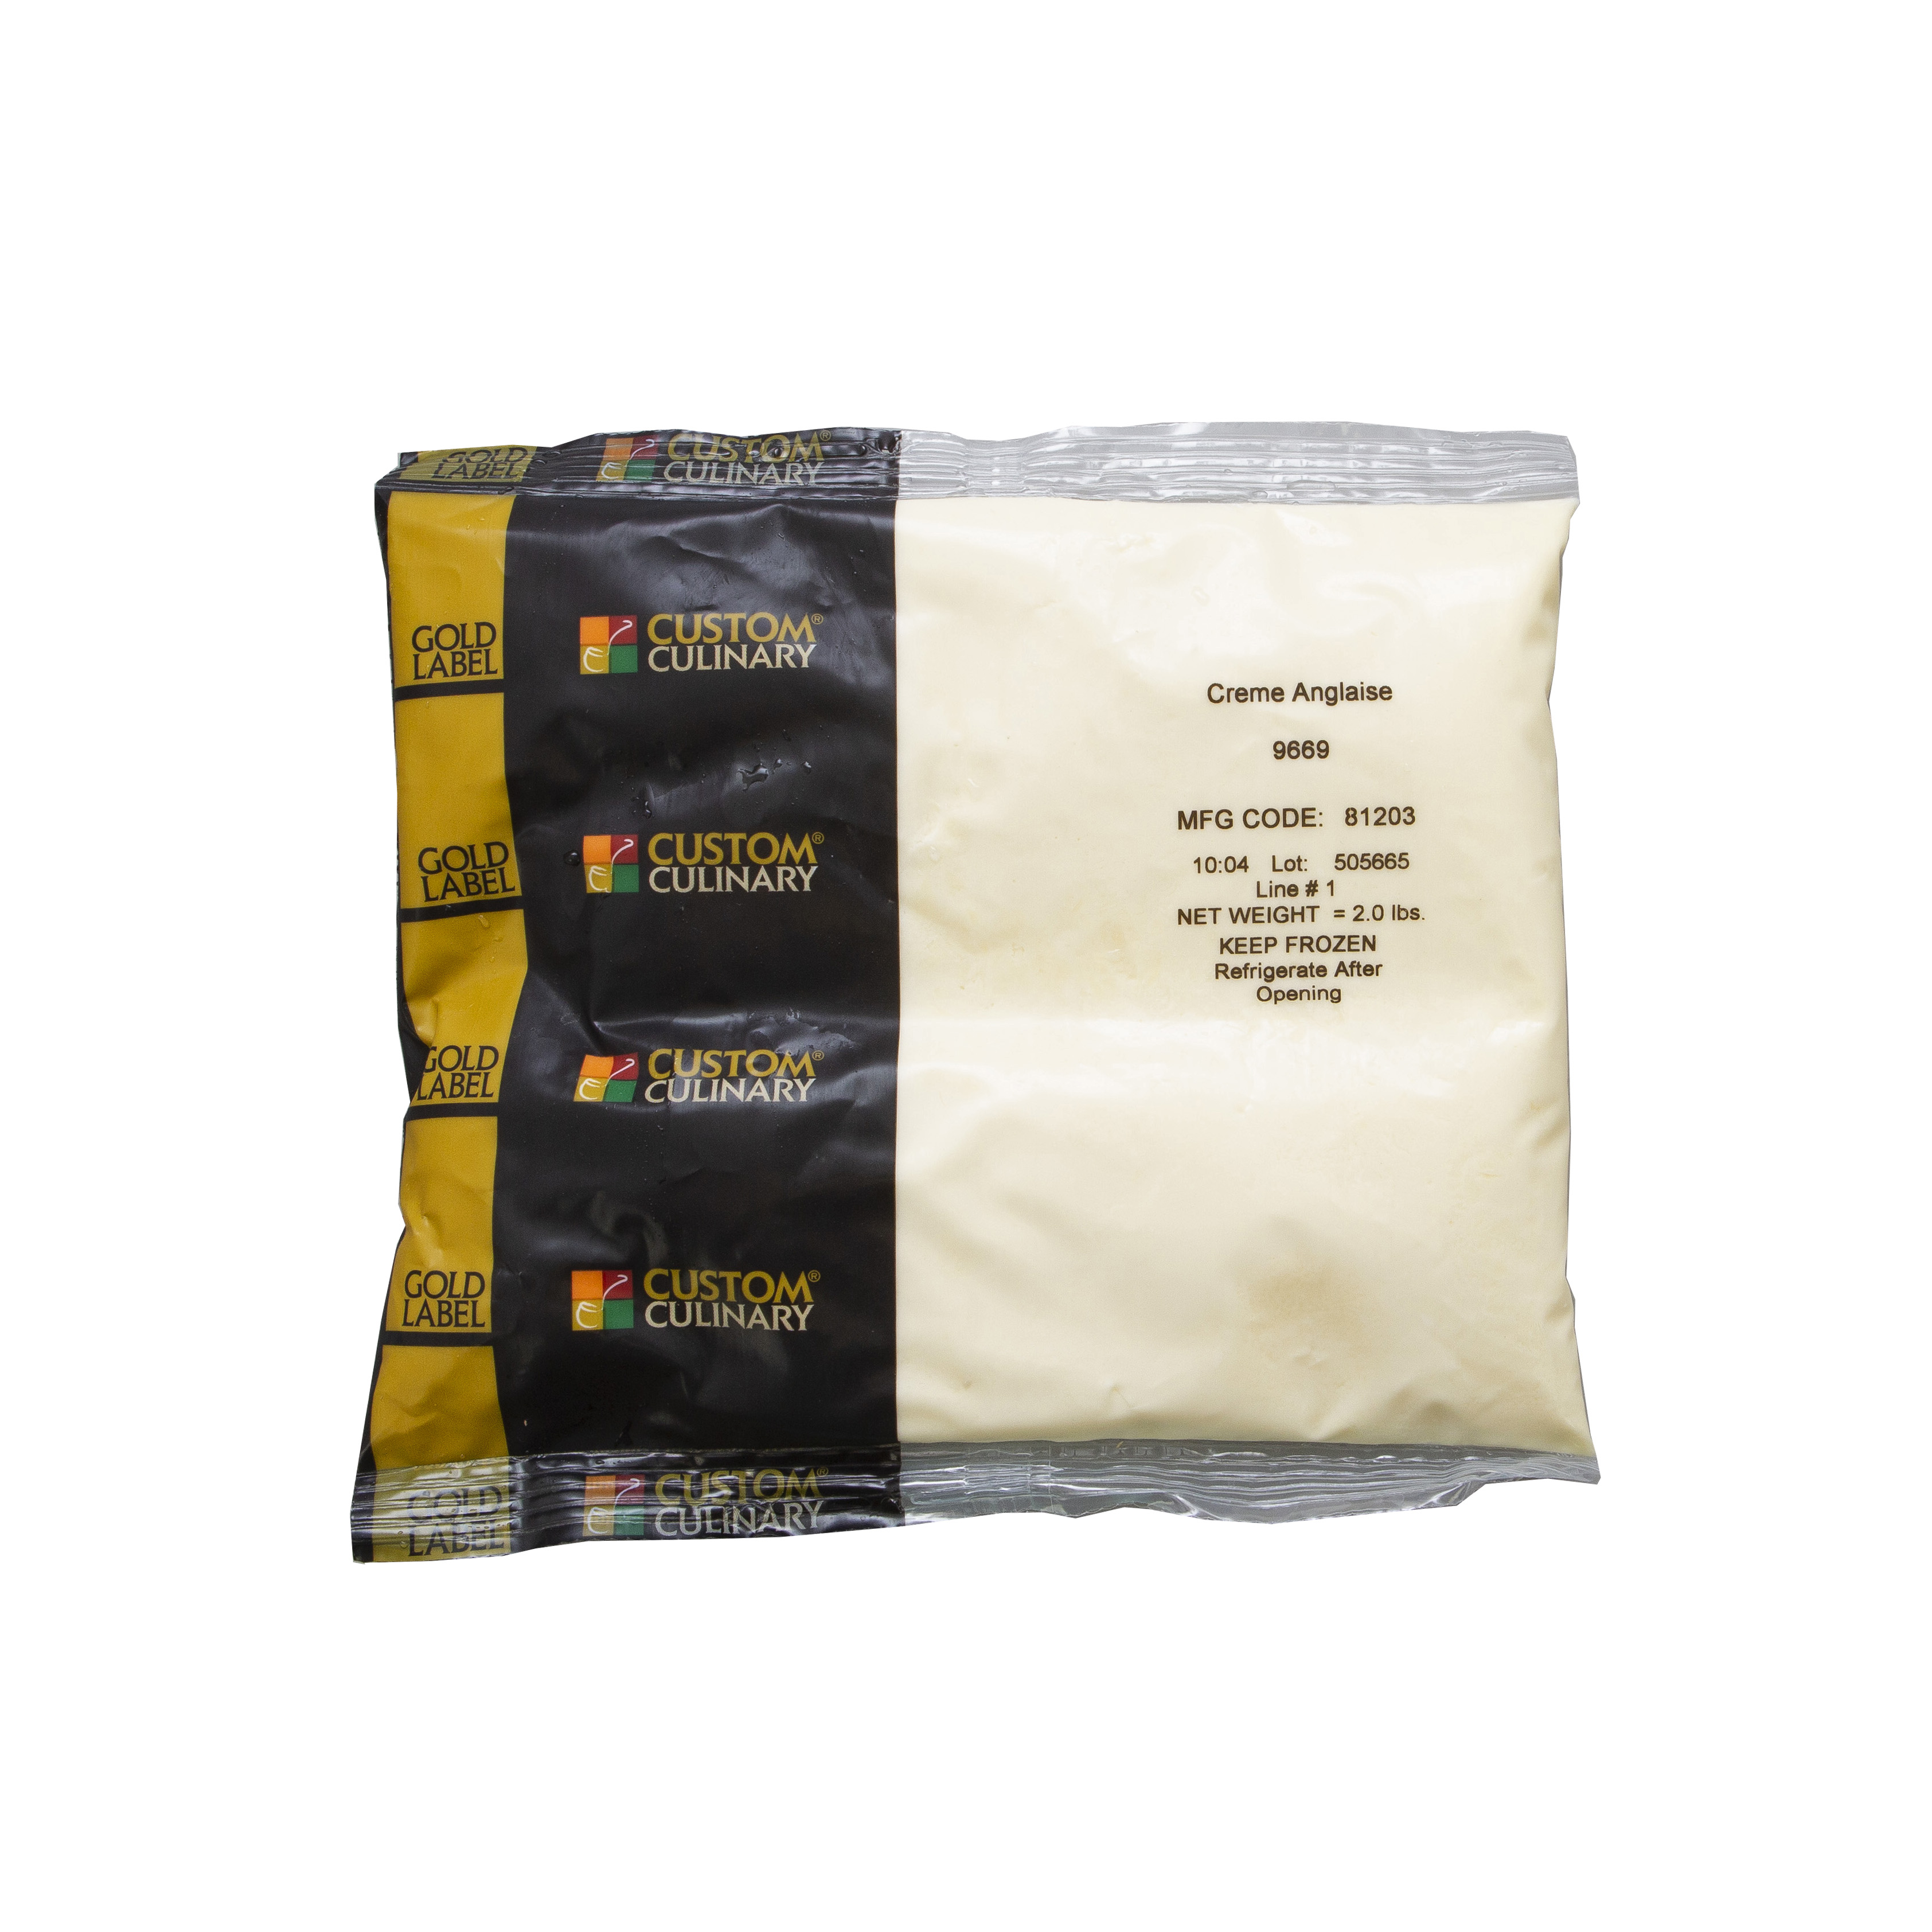 9669 - Gold Label Ready-To-Use Creme Anglaise Sauce